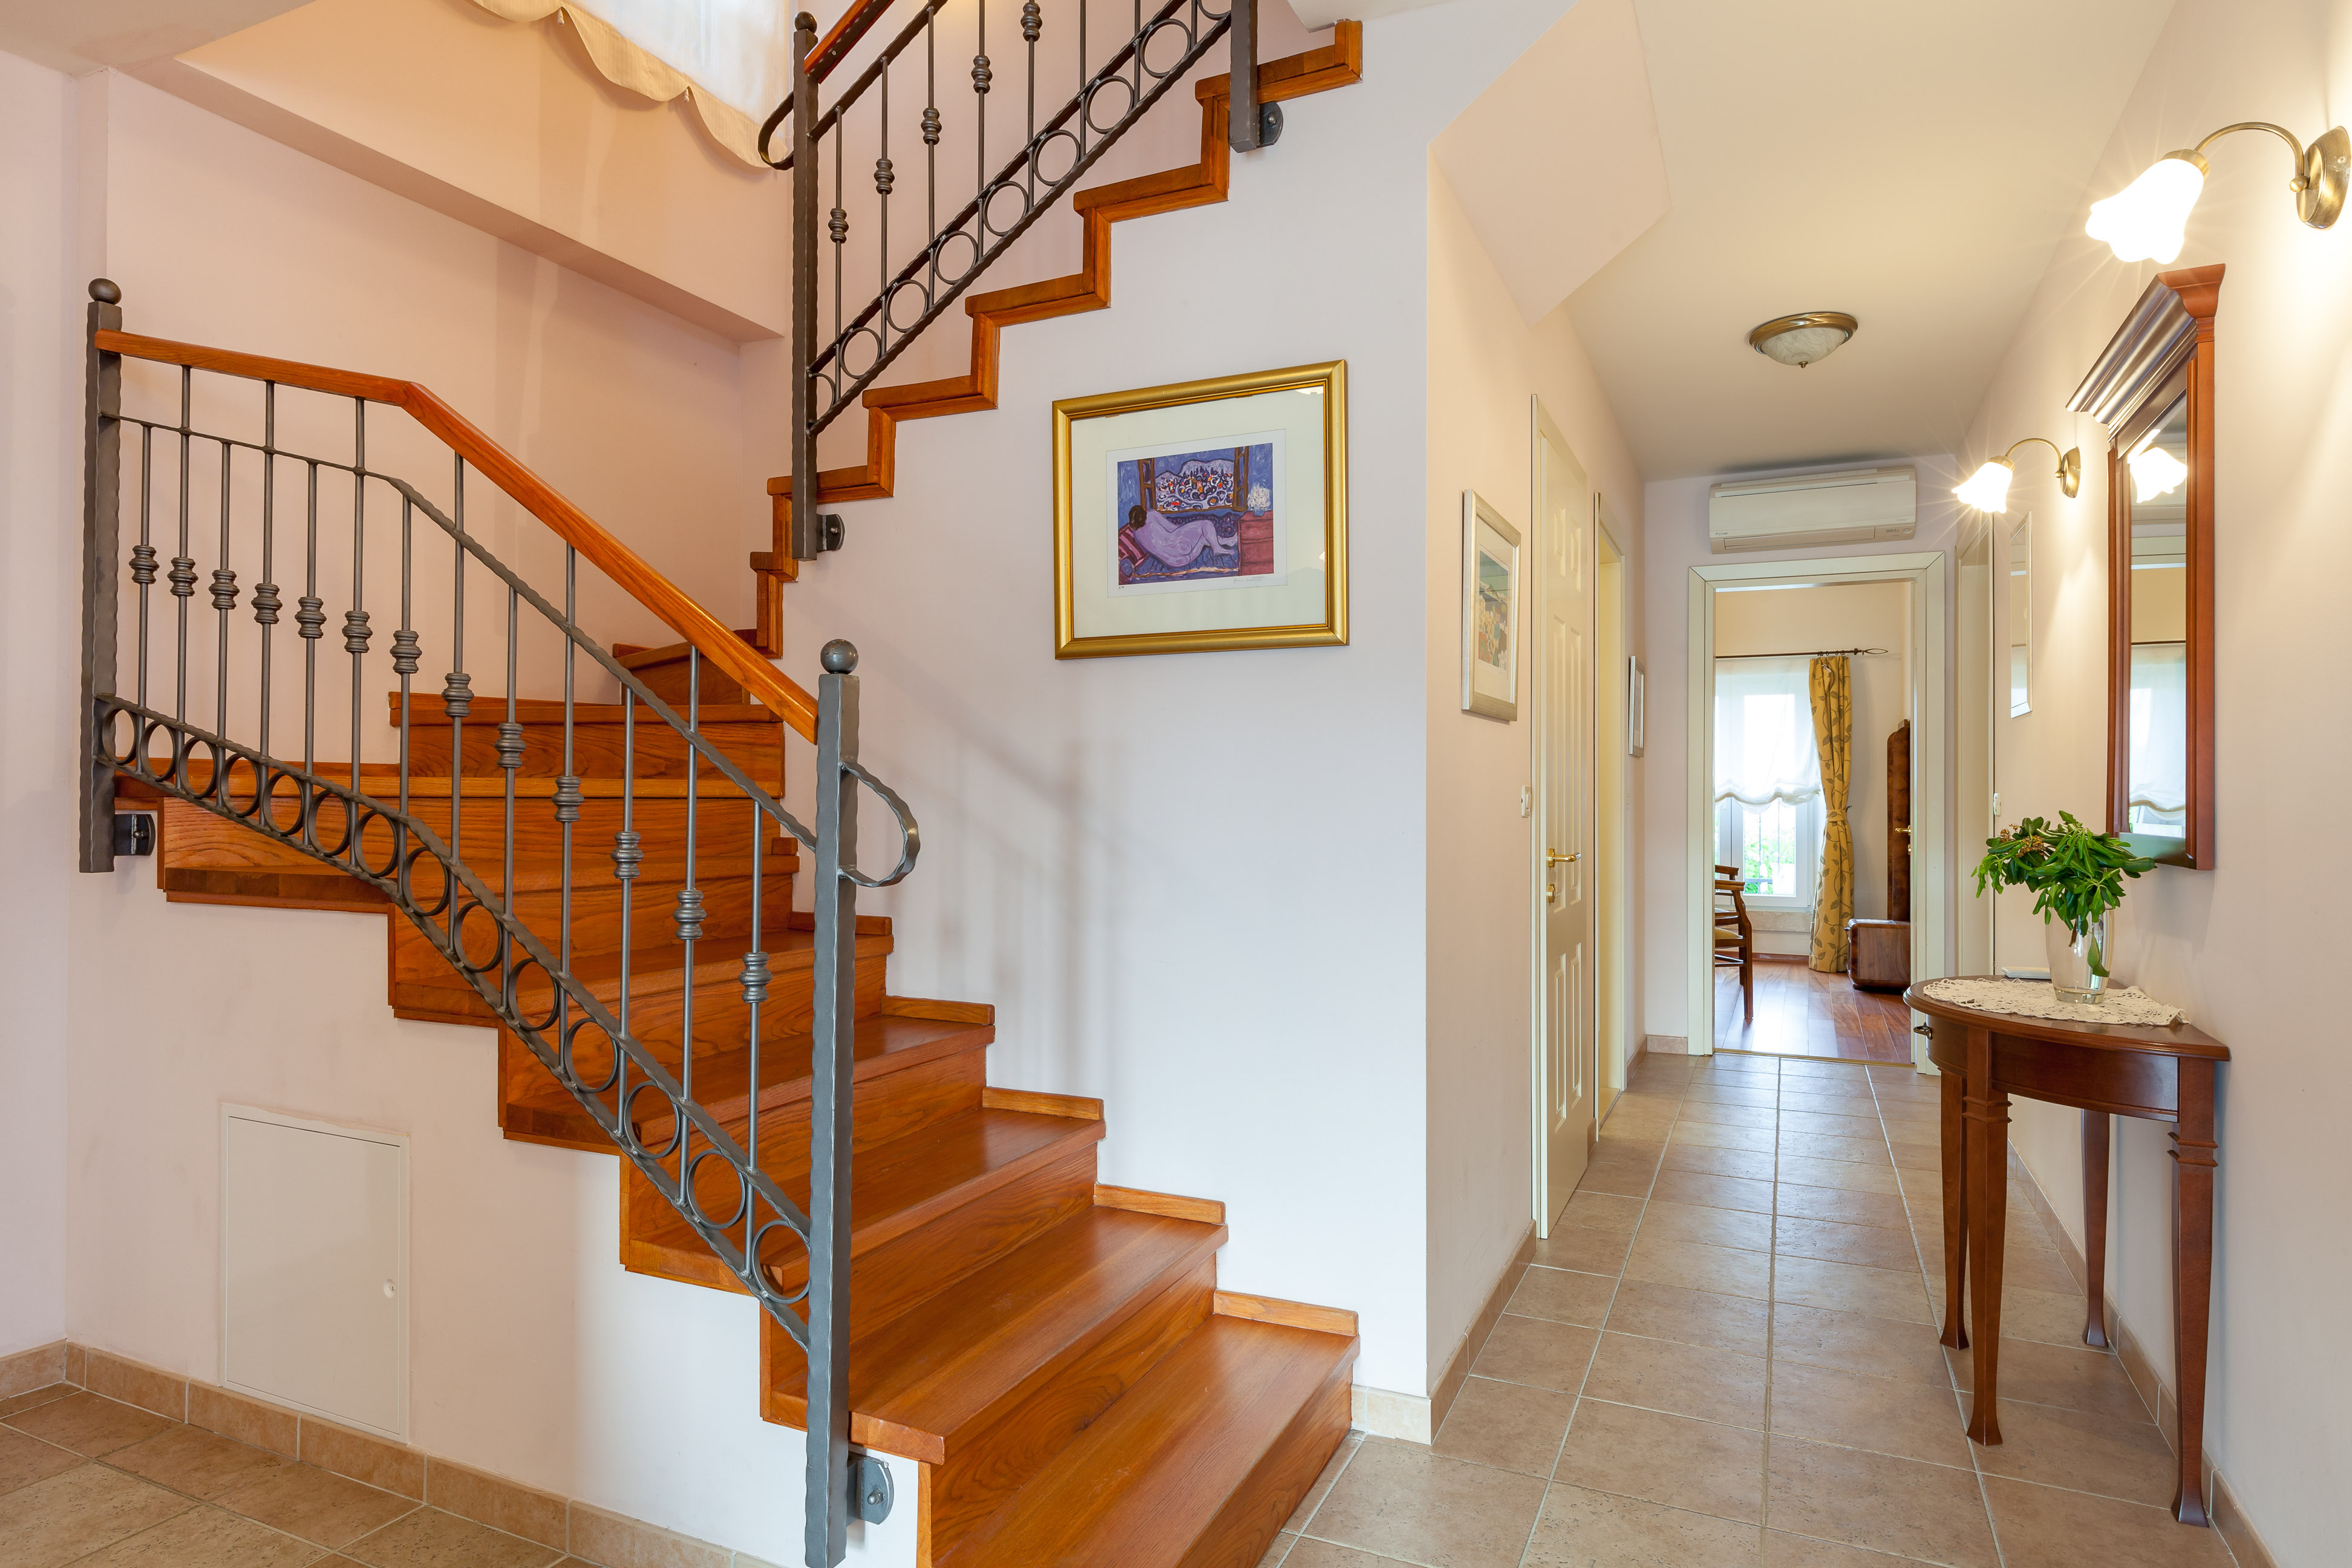 Stairs to the upper floor in the Villa Mir Vami